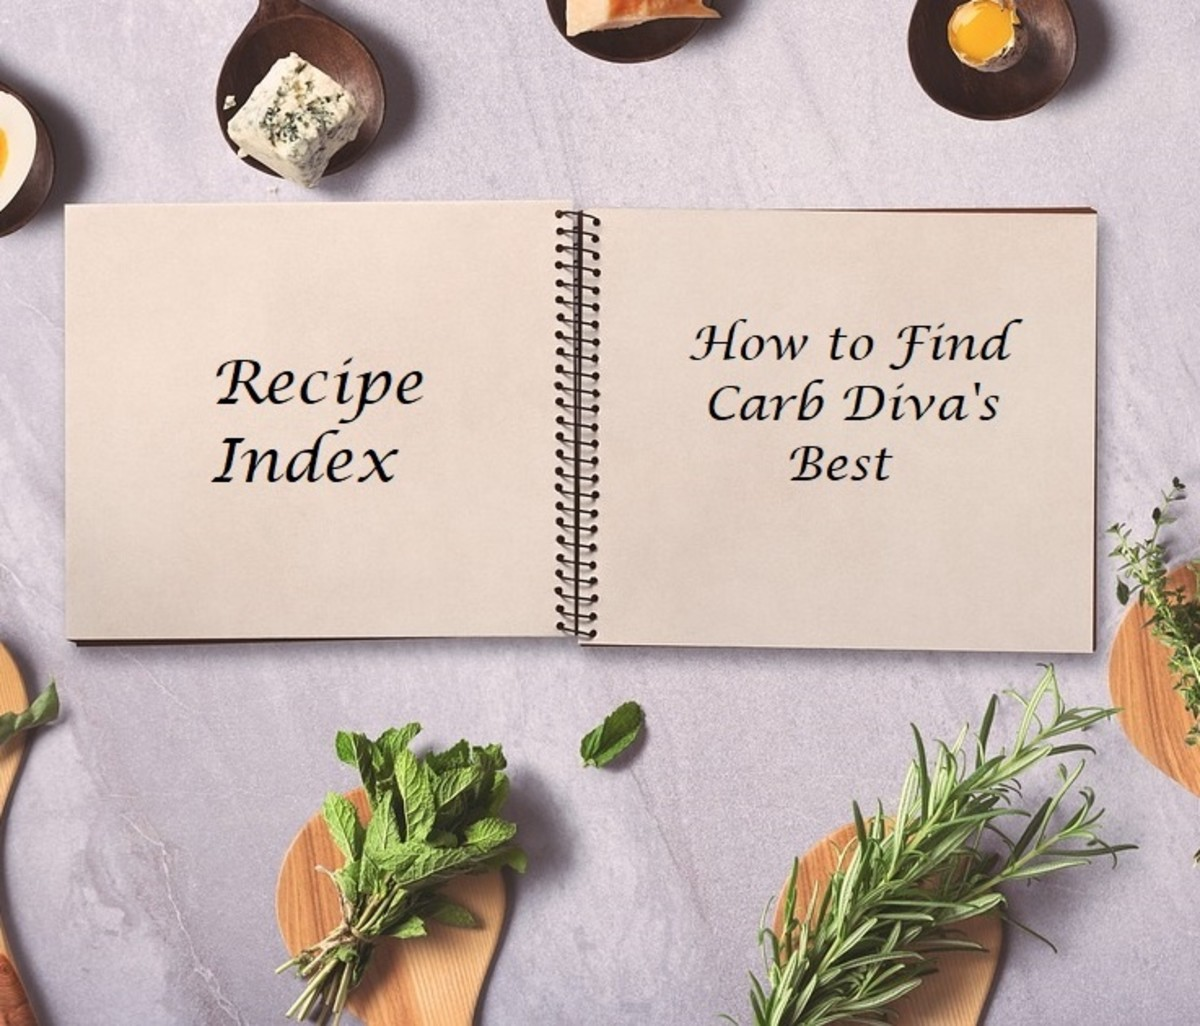 Recipe Index: How to Find Carb Diva's Best